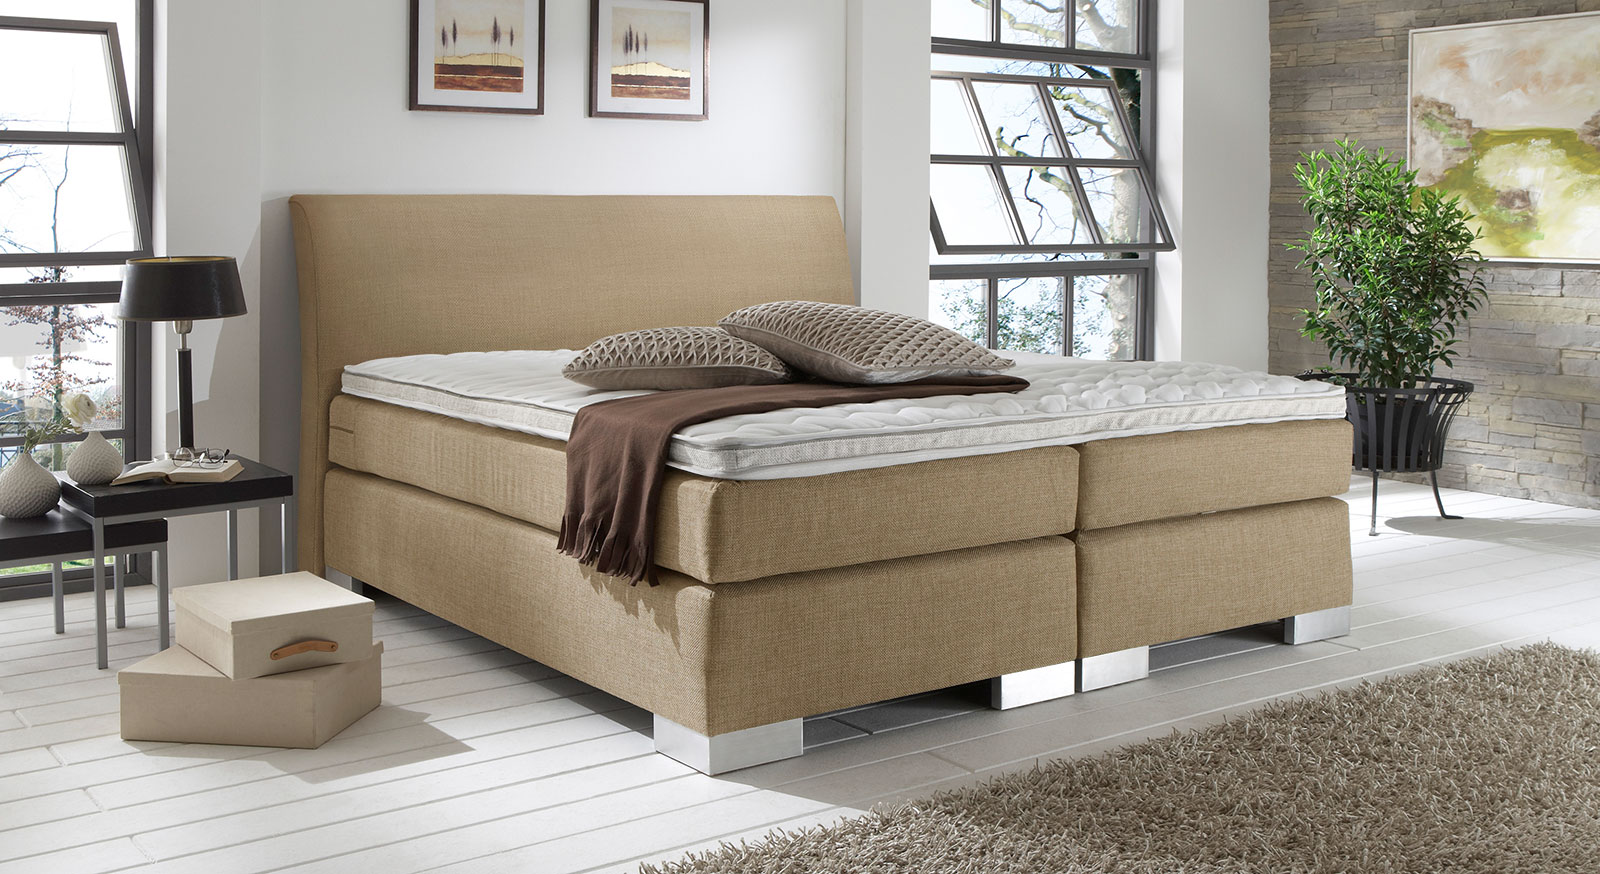 Stoff-Boxspringbett Lato in Cricket sand